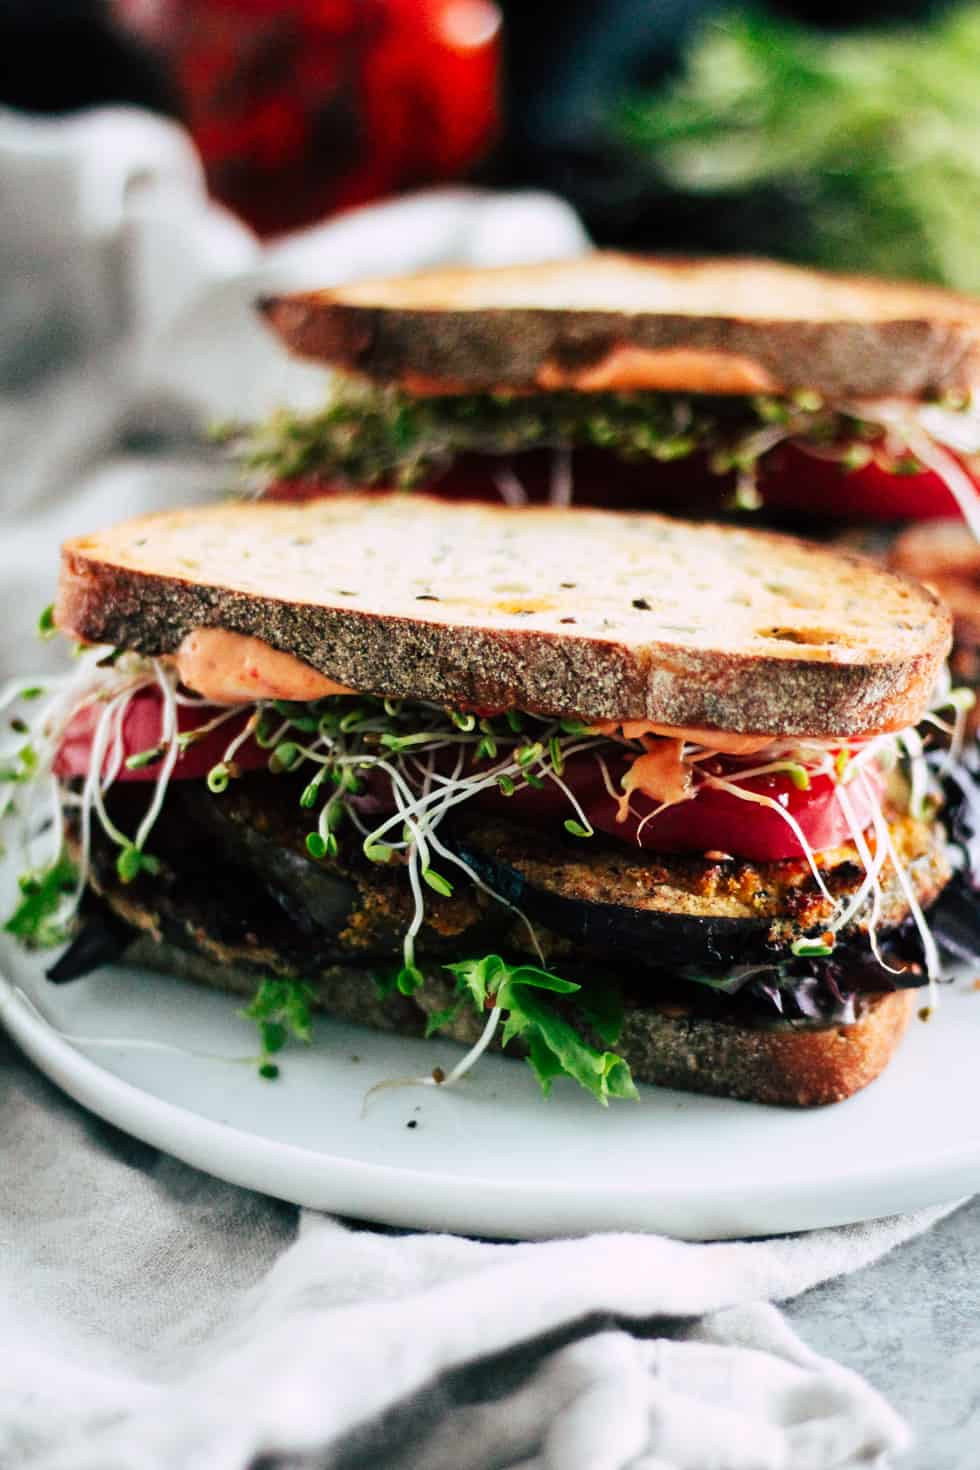 Crispy eggplant BLT sandwich on white plate with lettuce and harissa in the background.